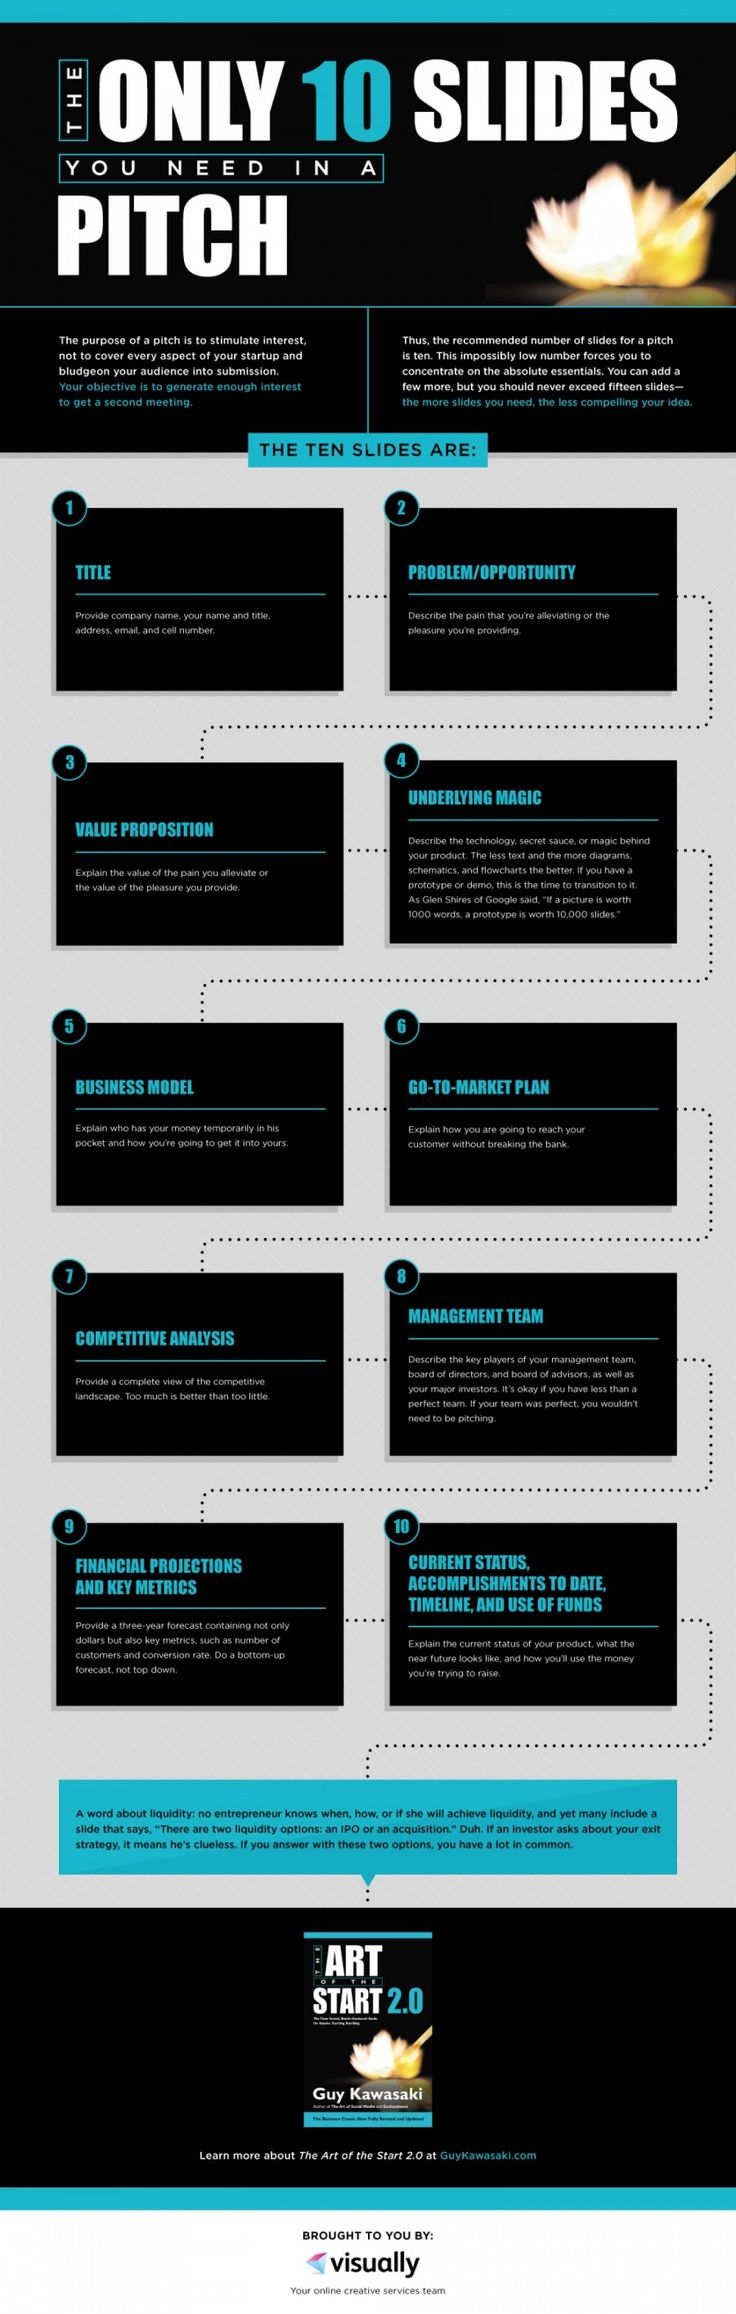 10 slides needed for a sales pitch infograph